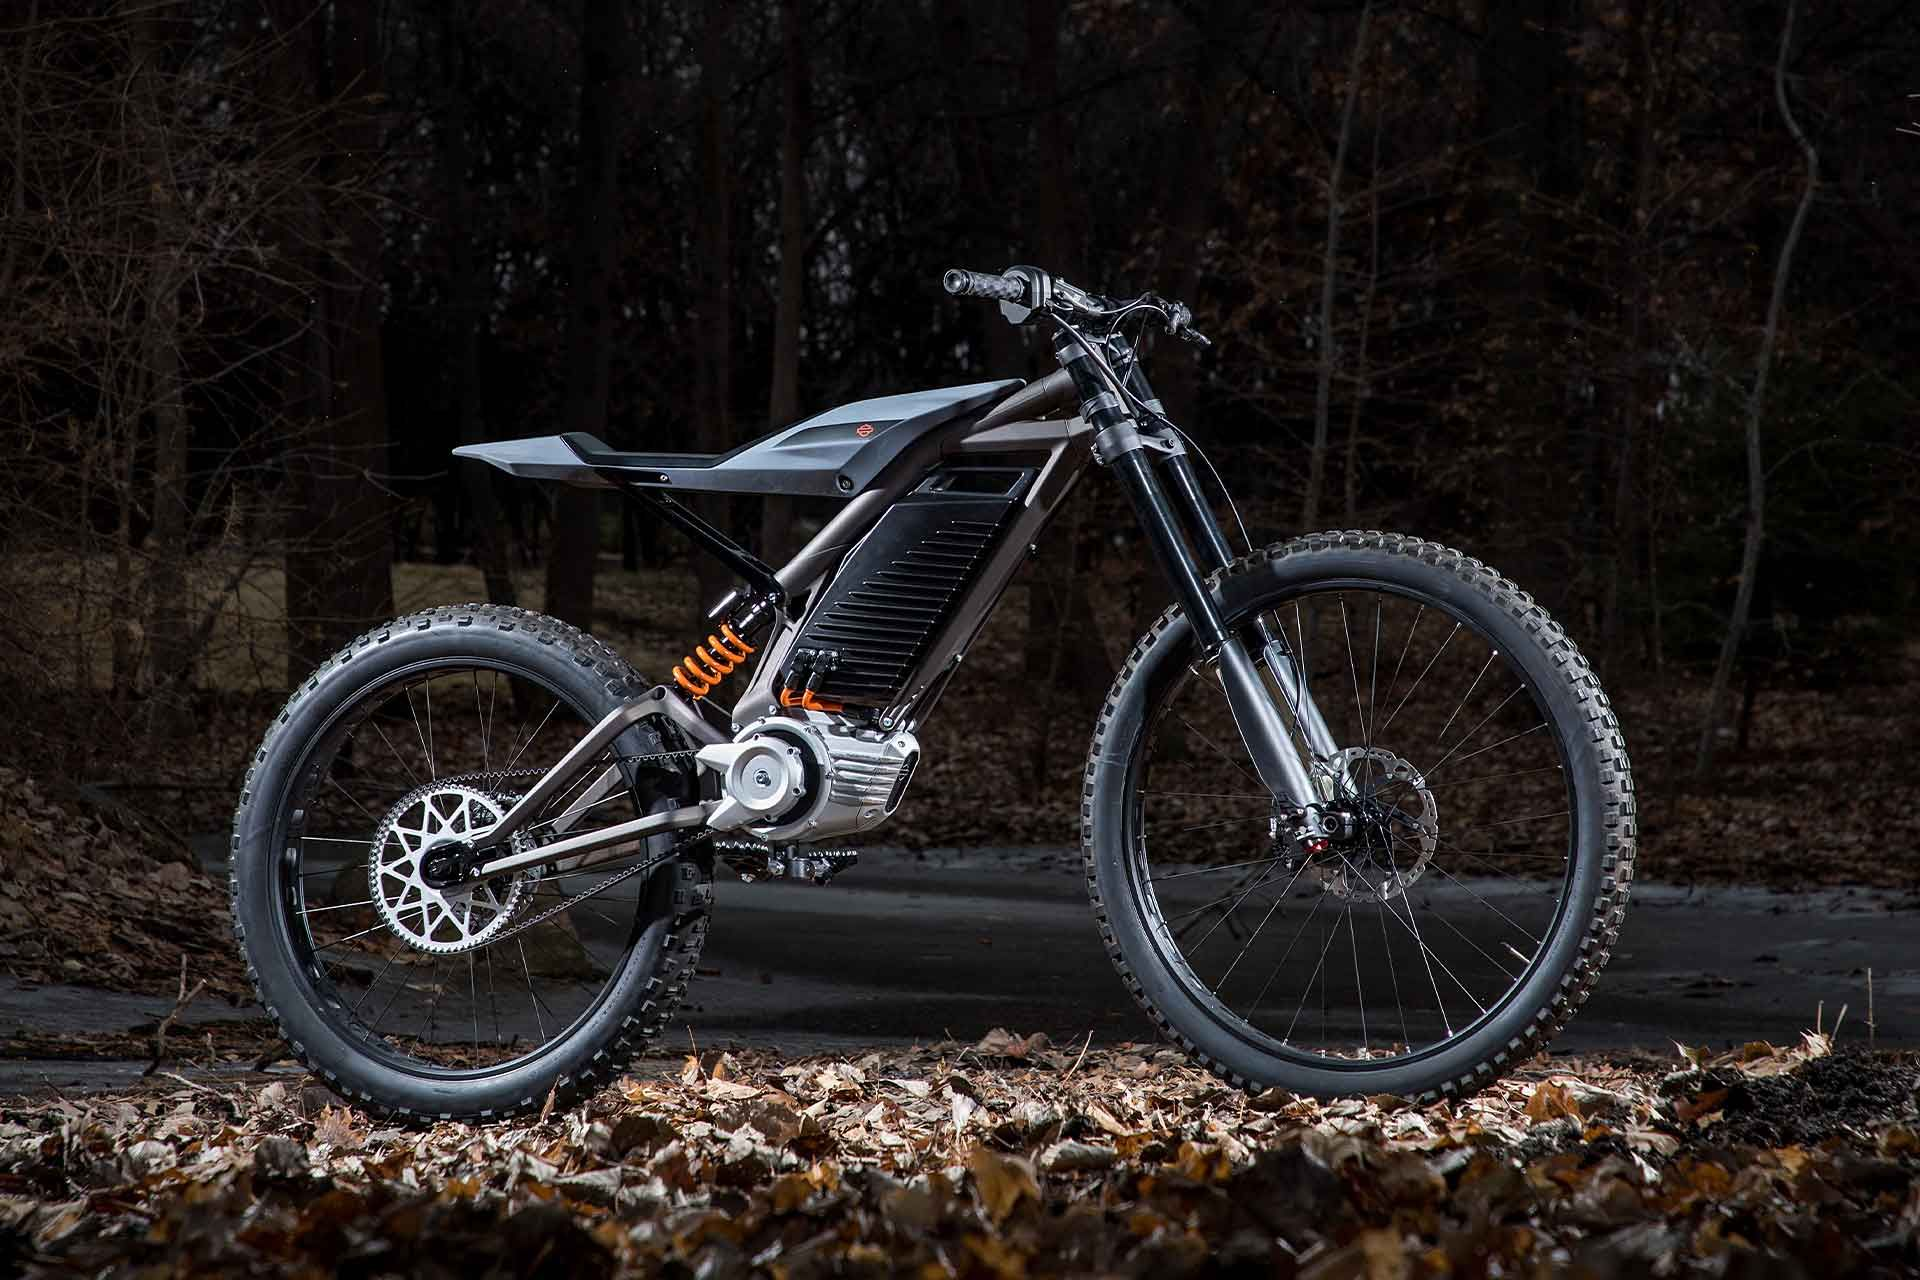 Harley Davidson Electric Bike Concepts Electric Motorcycle New